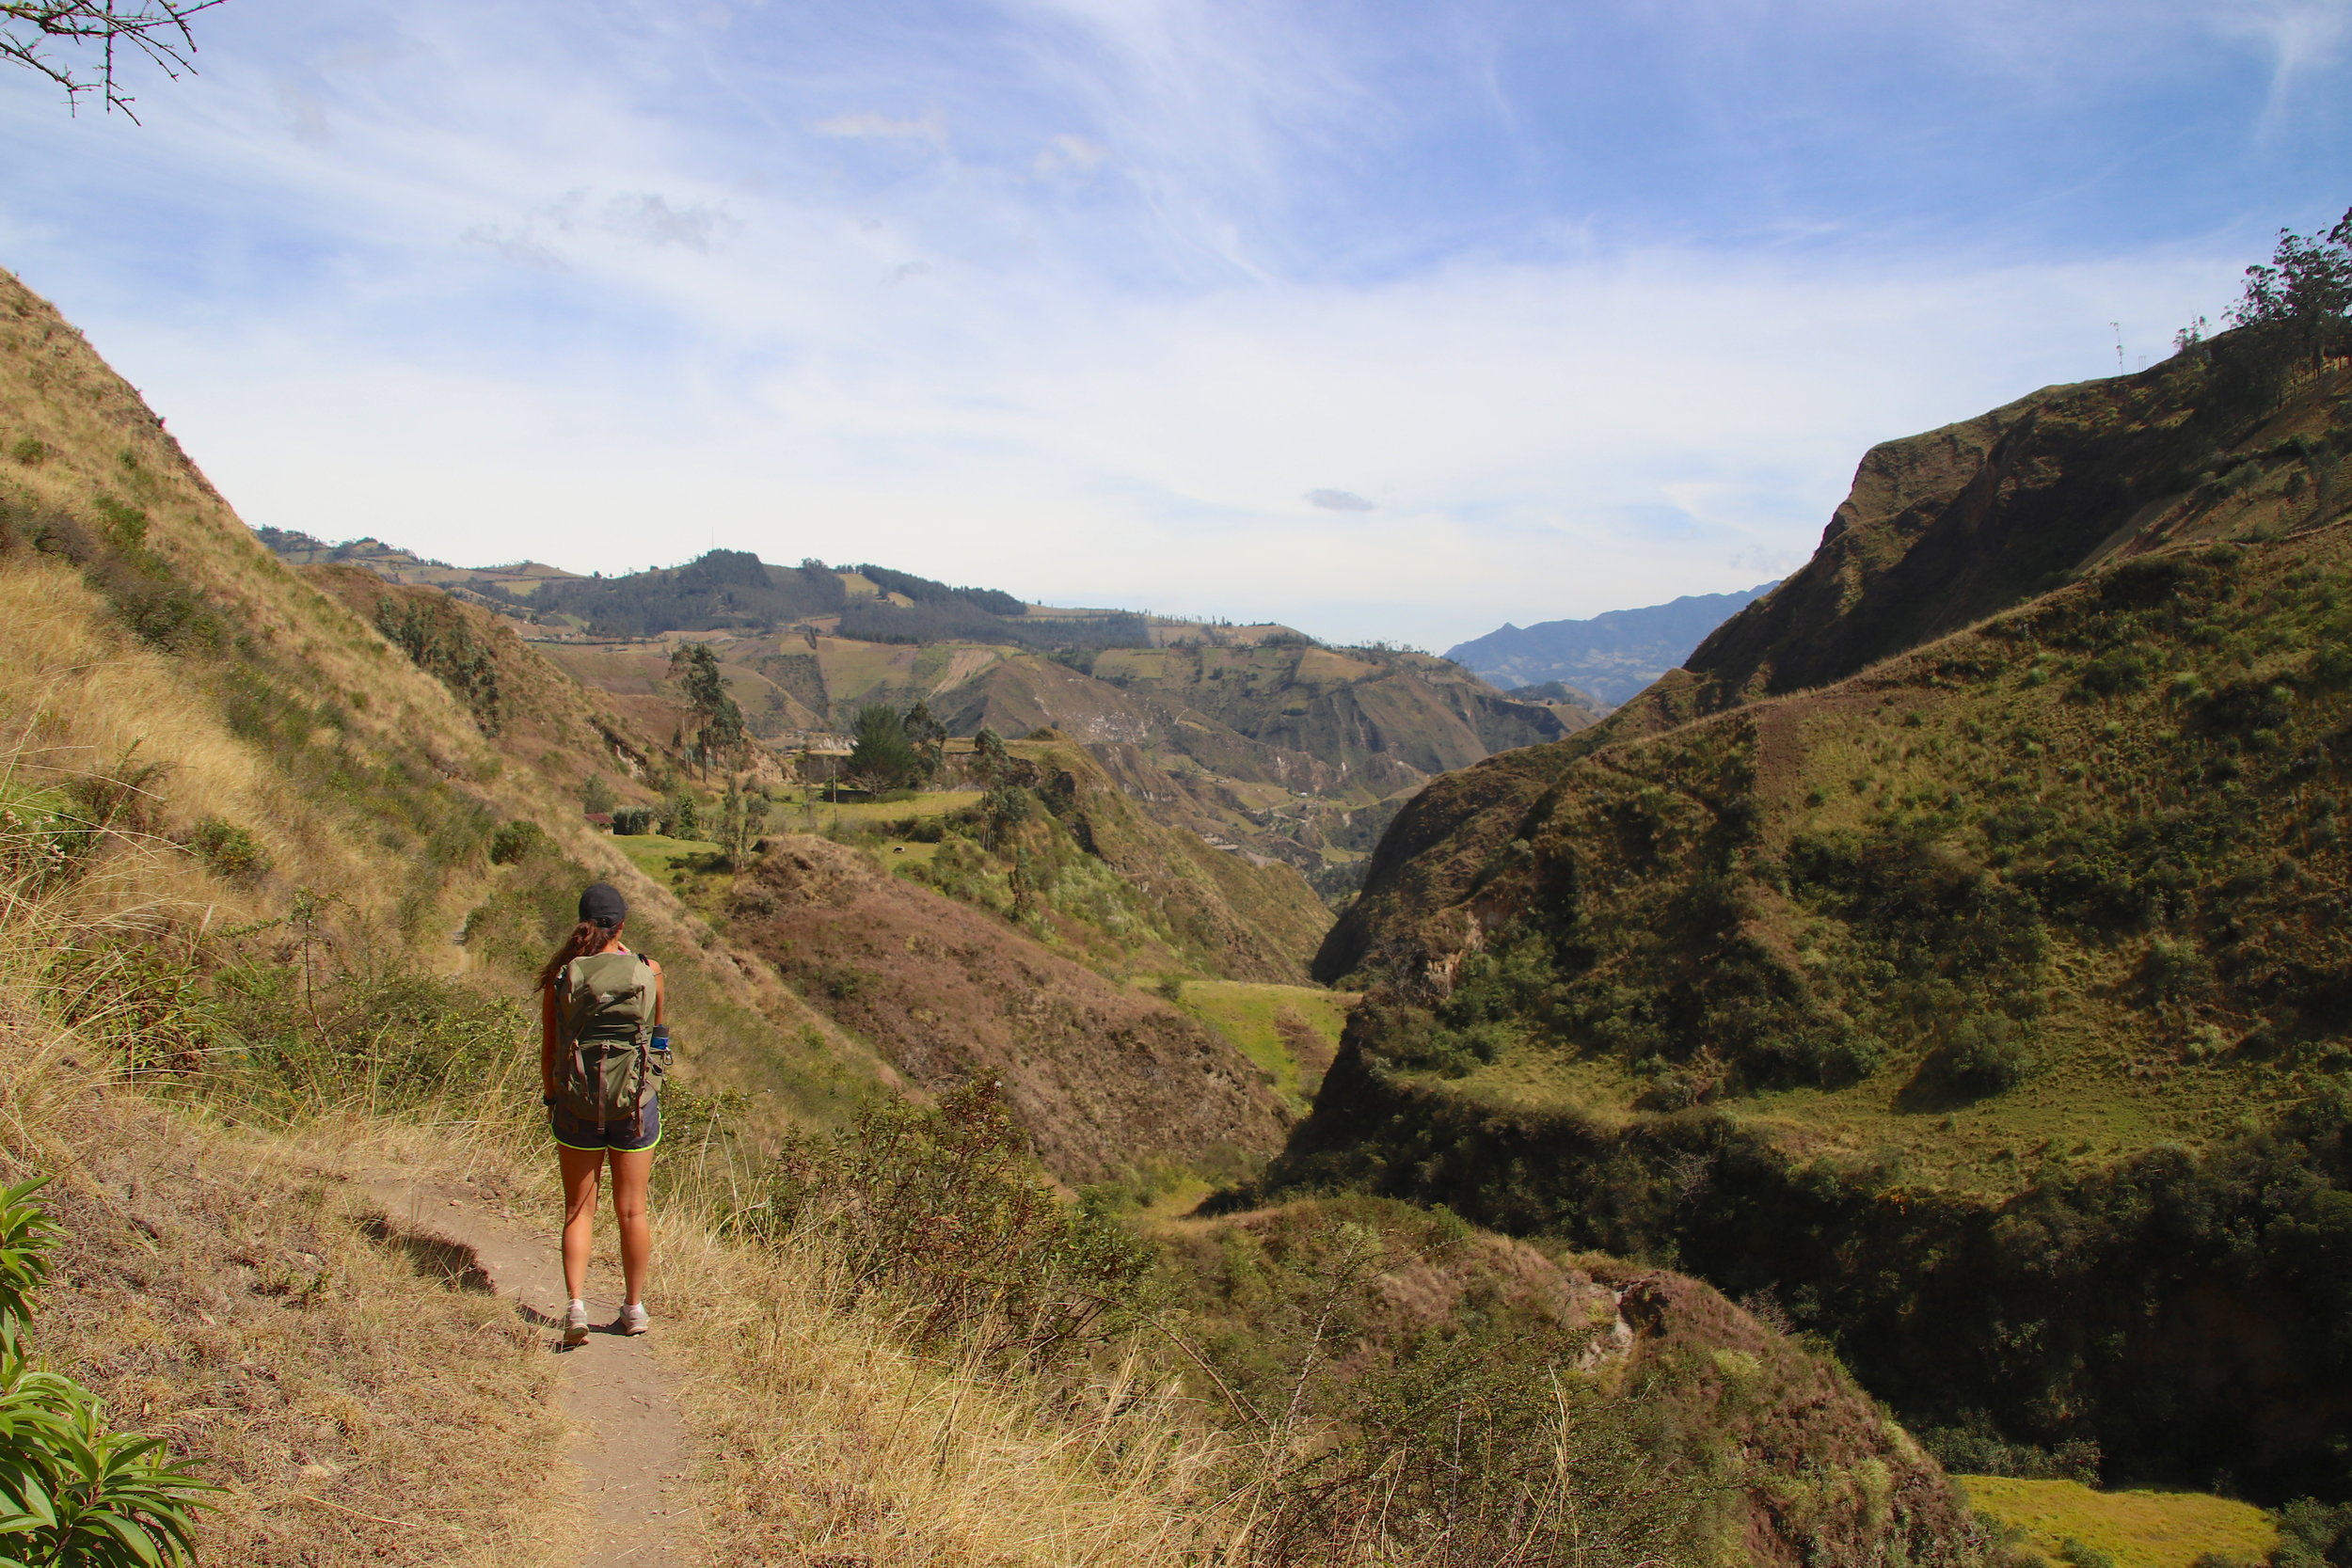 ecuador travel quilotoa loop hiking girl .JPG